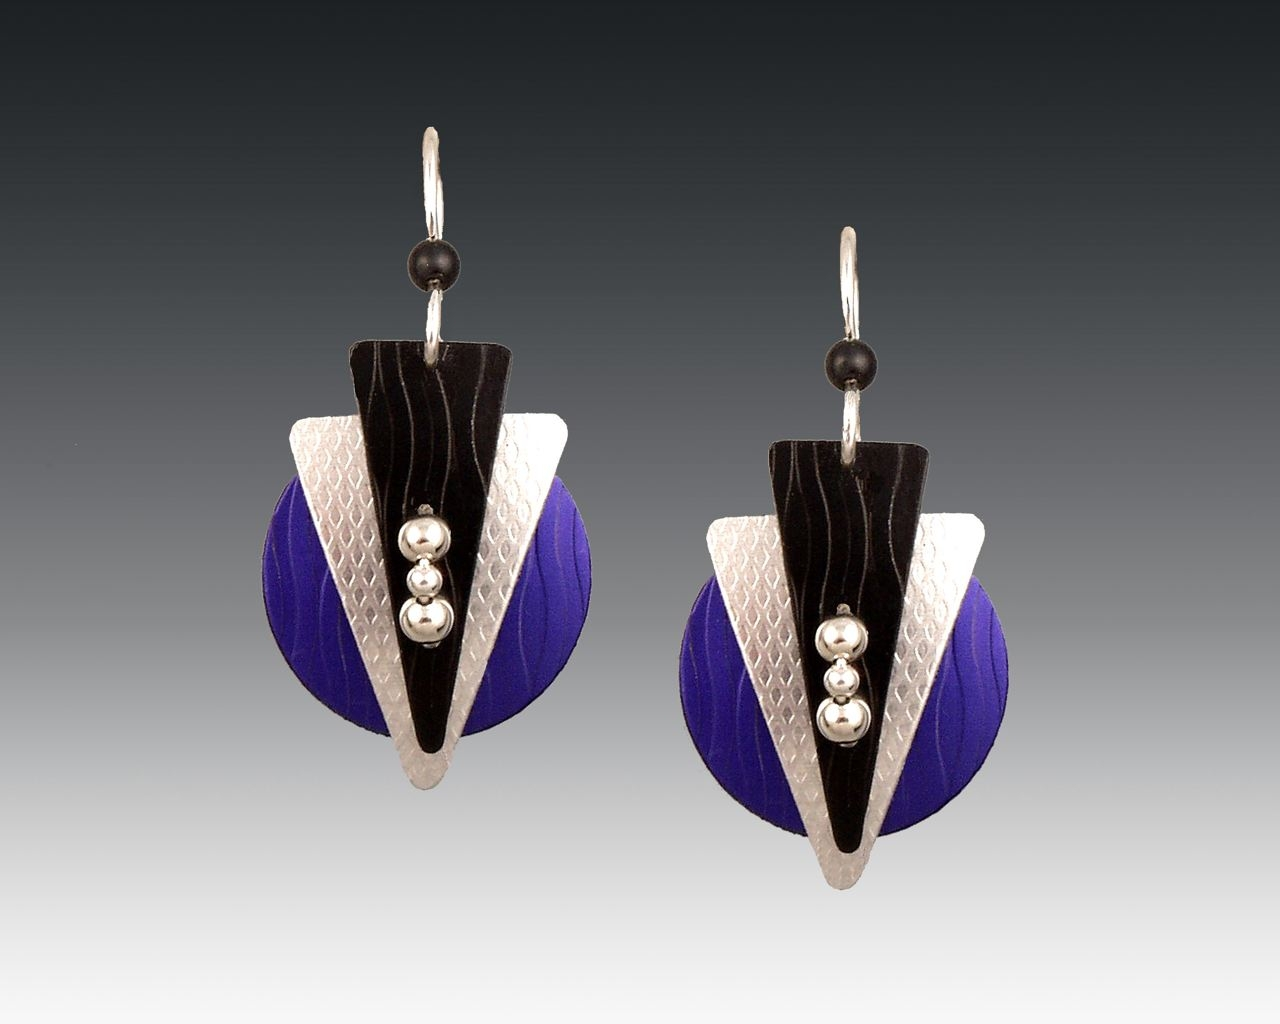 Anodized Aluminum and Sterling Silver Earrings by Mendy Marks Fine Jewelry at CustomMade.com